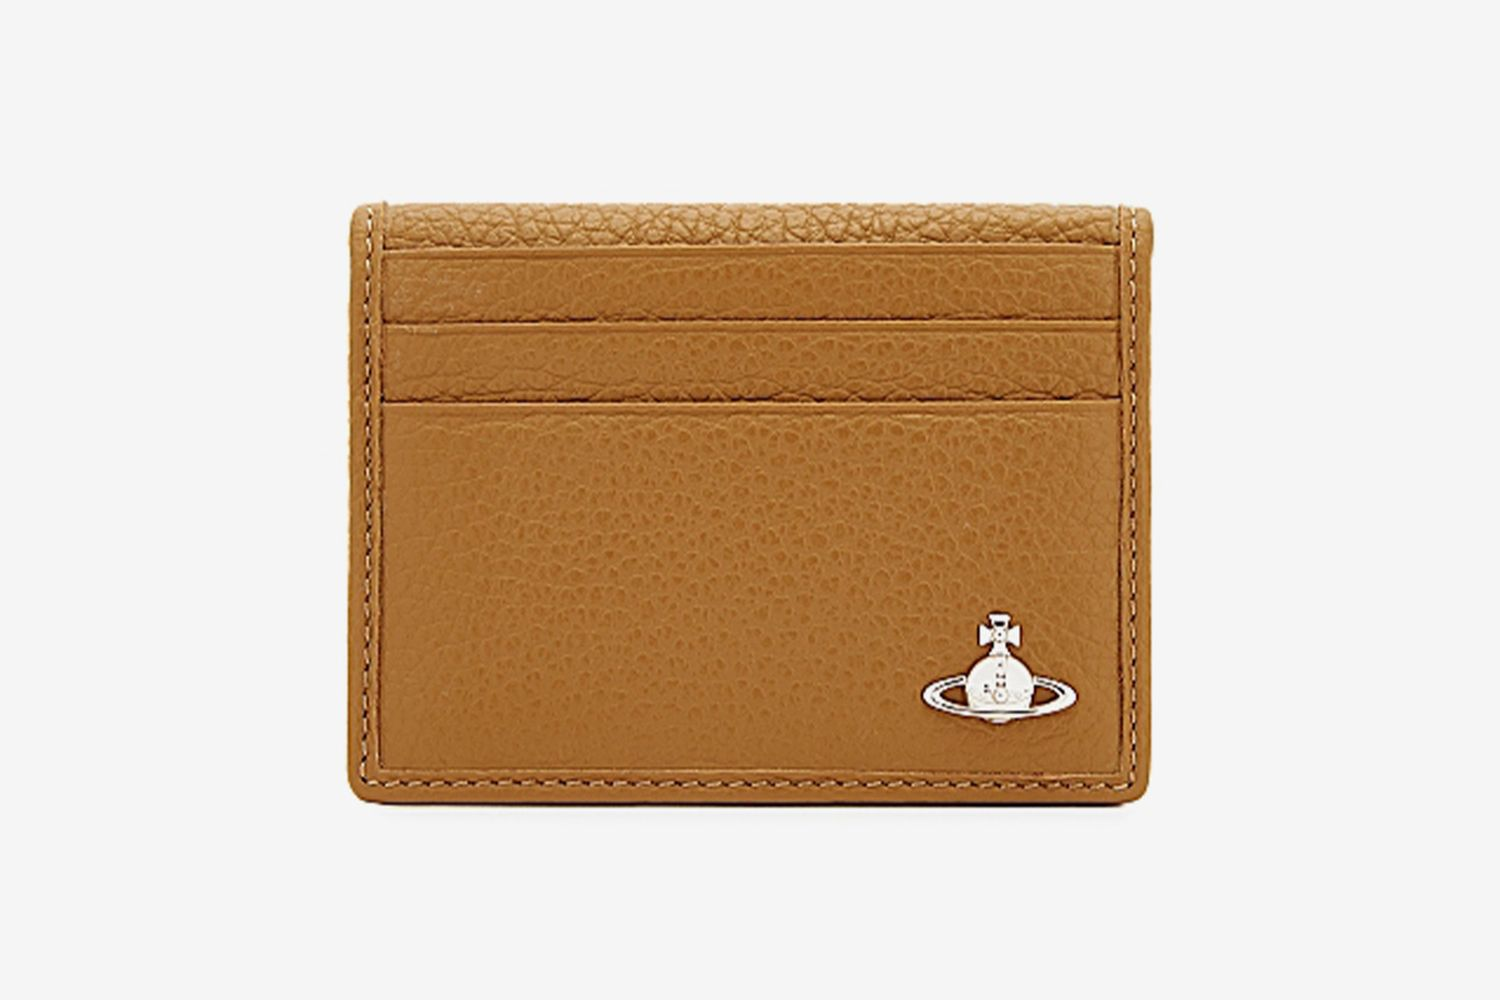 Mustard Grained Leather Card Holder